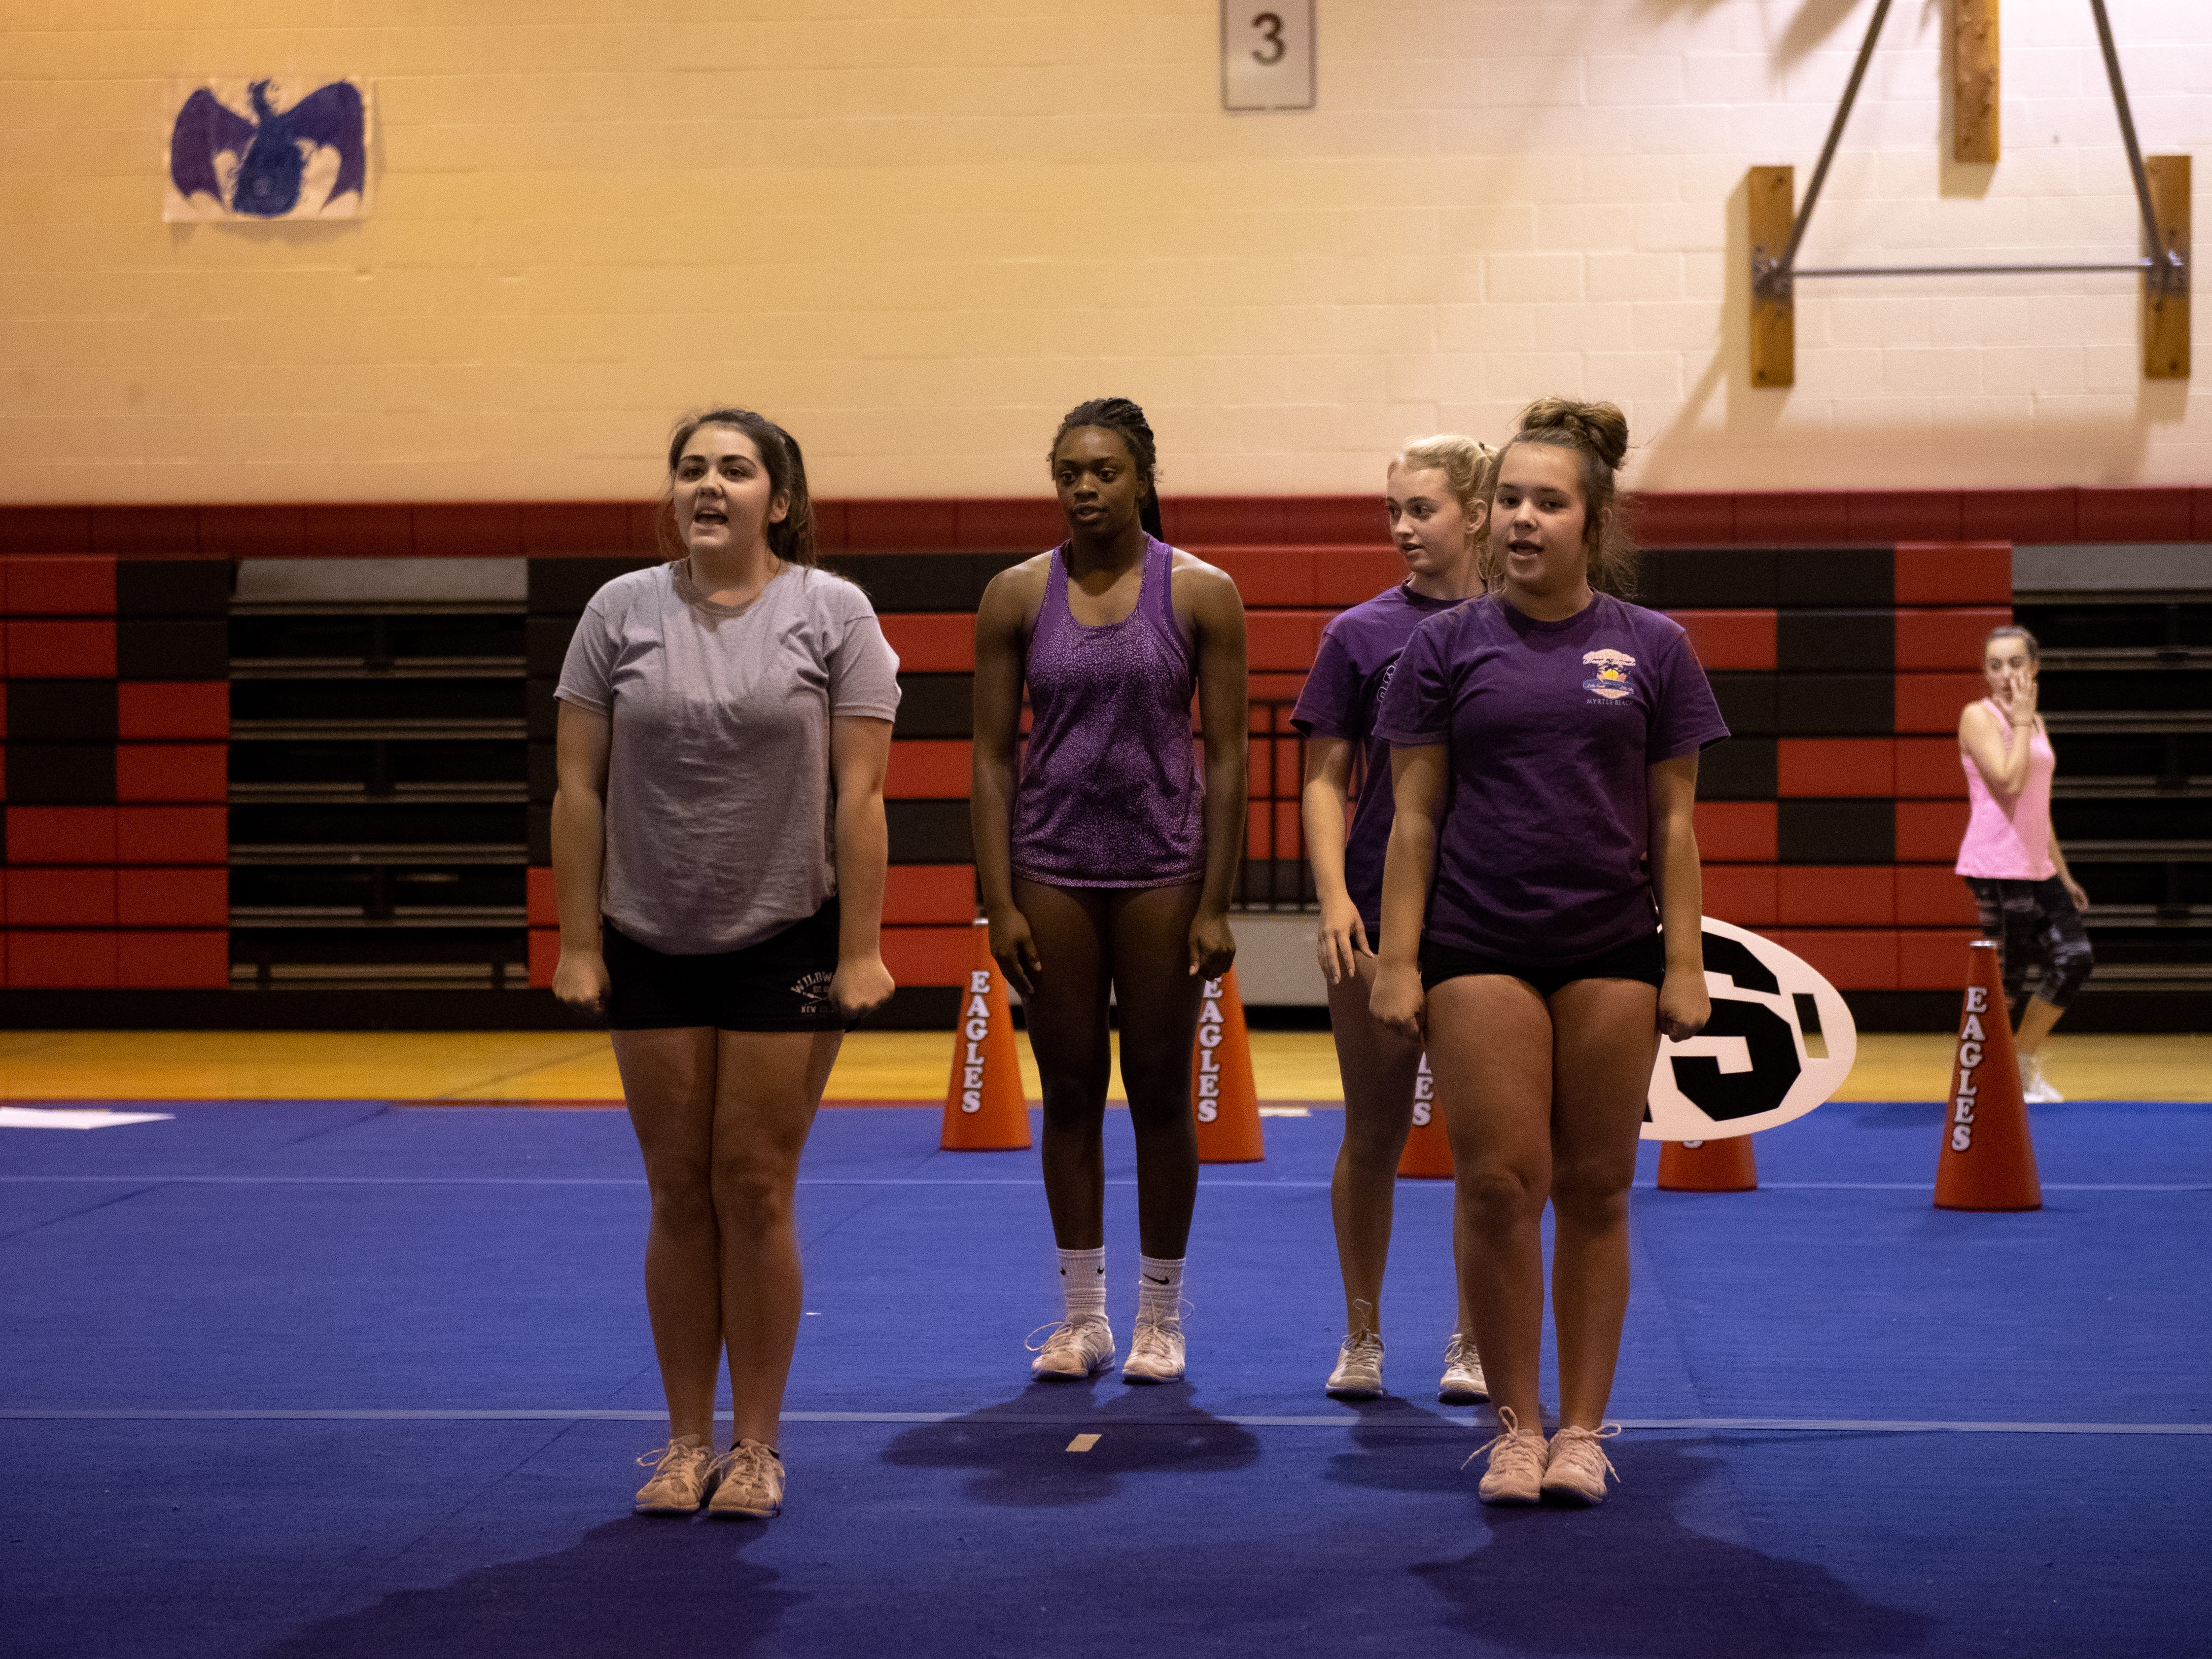 (Left to right) Cayla Lippert, Samira Howard, Londyn Sayers and Brooke Johnson prepare to start the routine during Dover's competitive spirit practice, November 14, 2018.